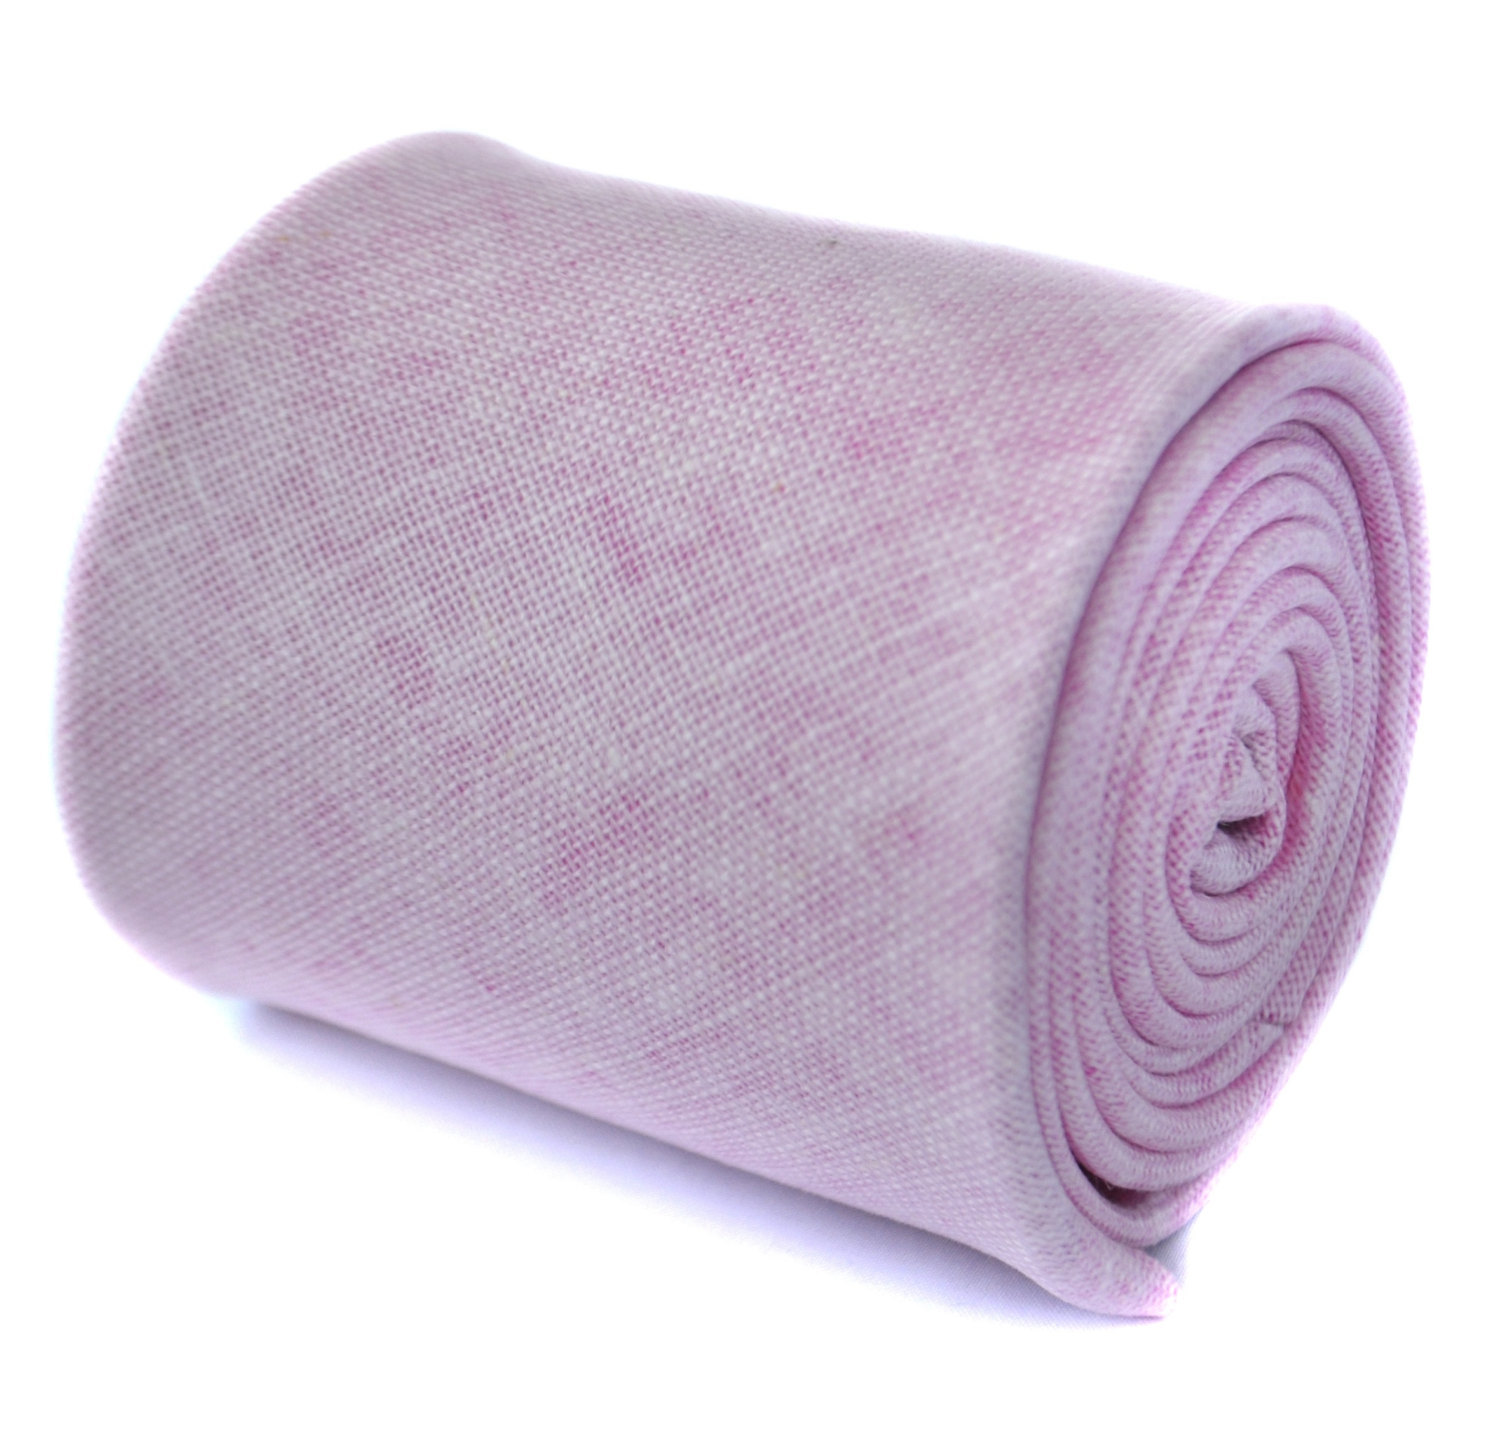 plain pale pink textured linen tie by Frederick Thomas FT1966